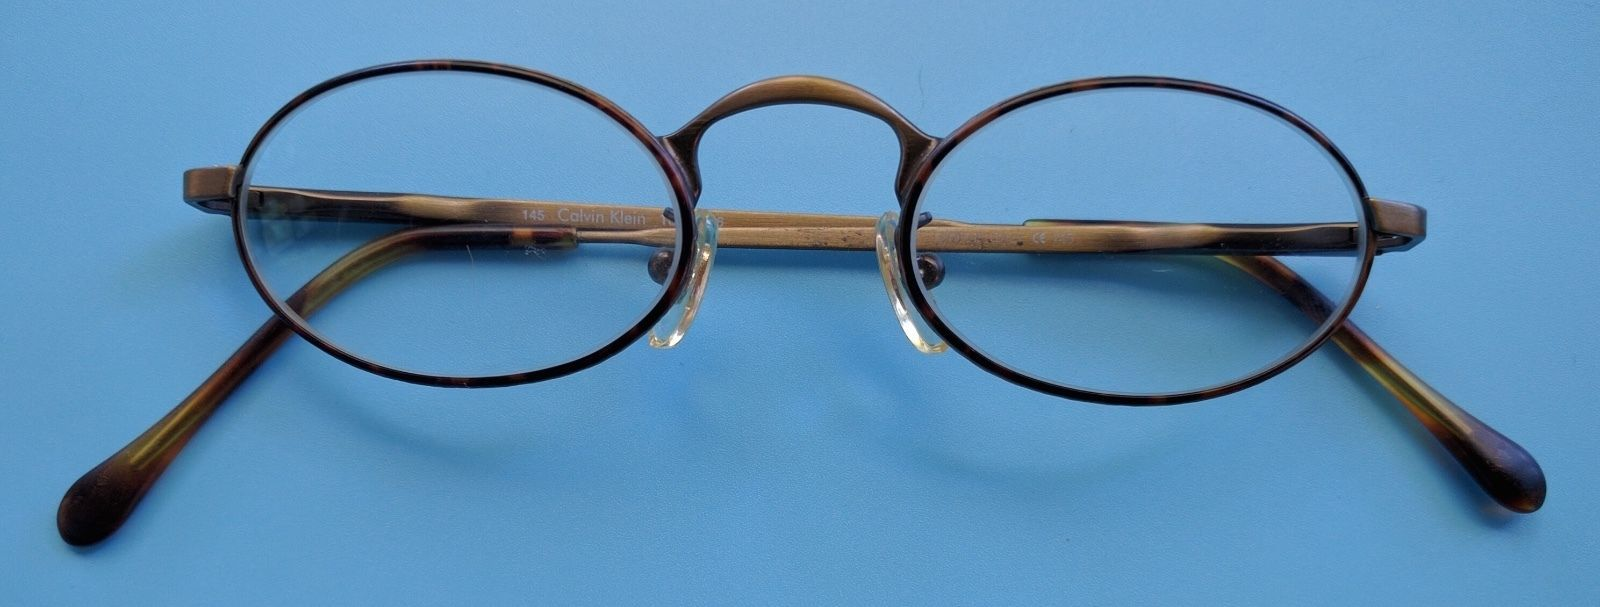 003a9c6f7f3 CALVIN KLEIN 131 556 Eyeglasses Frames Metal and 8 similar items